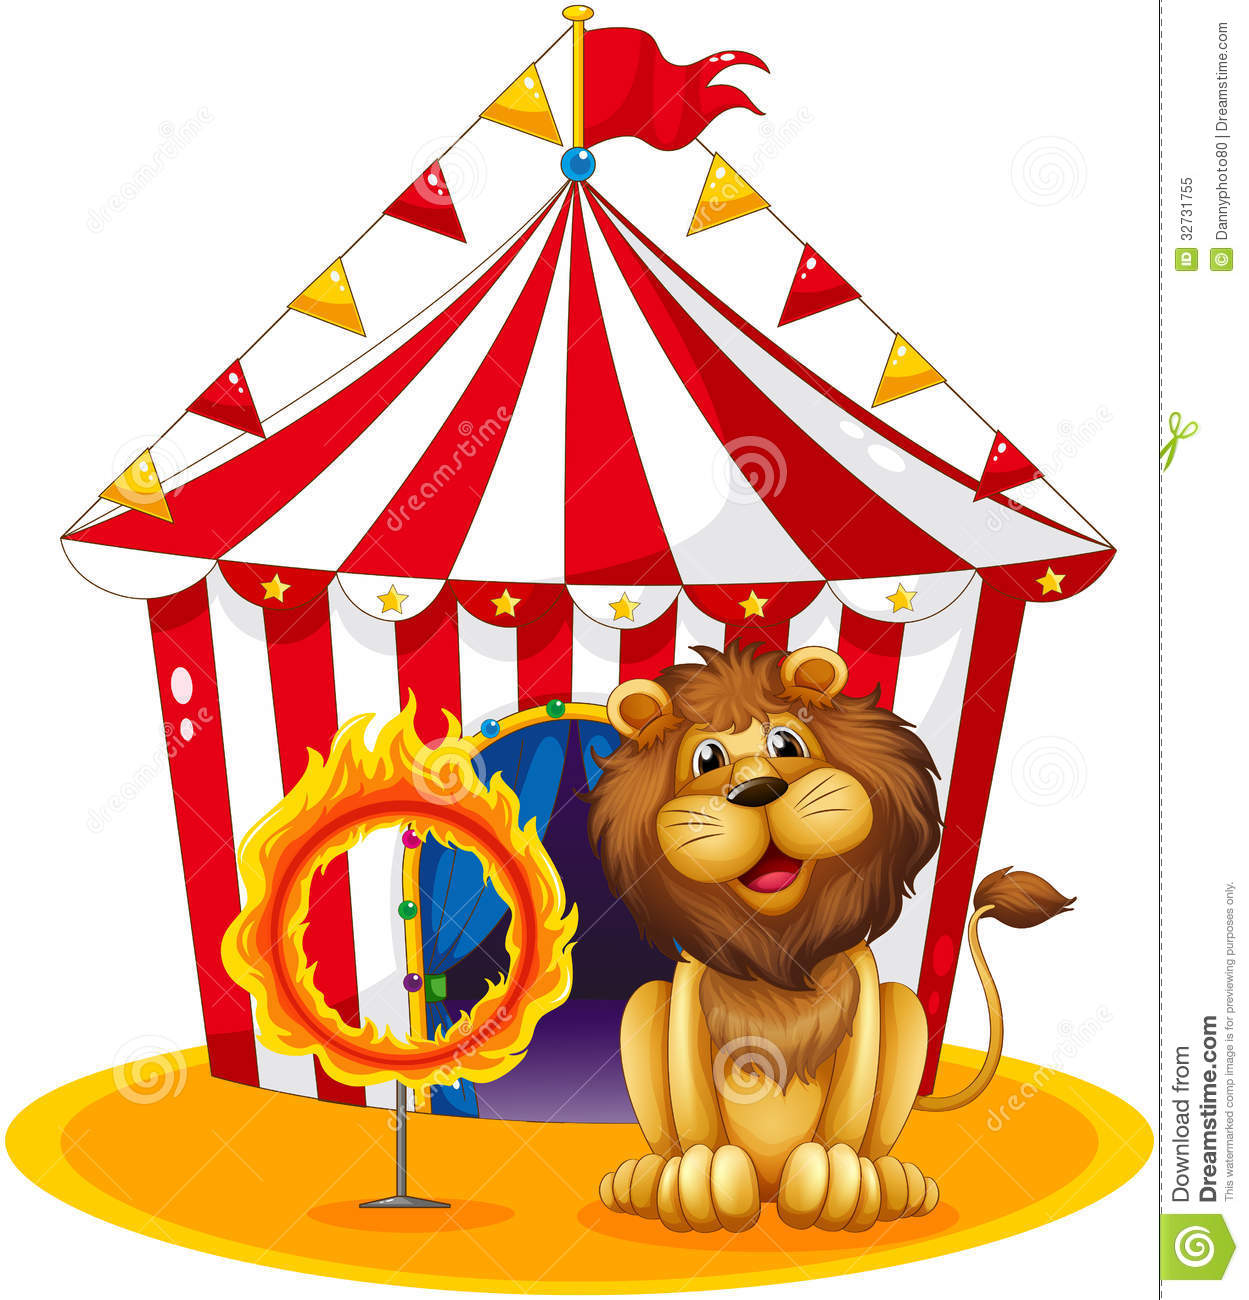 A Lion Beside A Fire Hoop At The Circus Royalty Free Stock